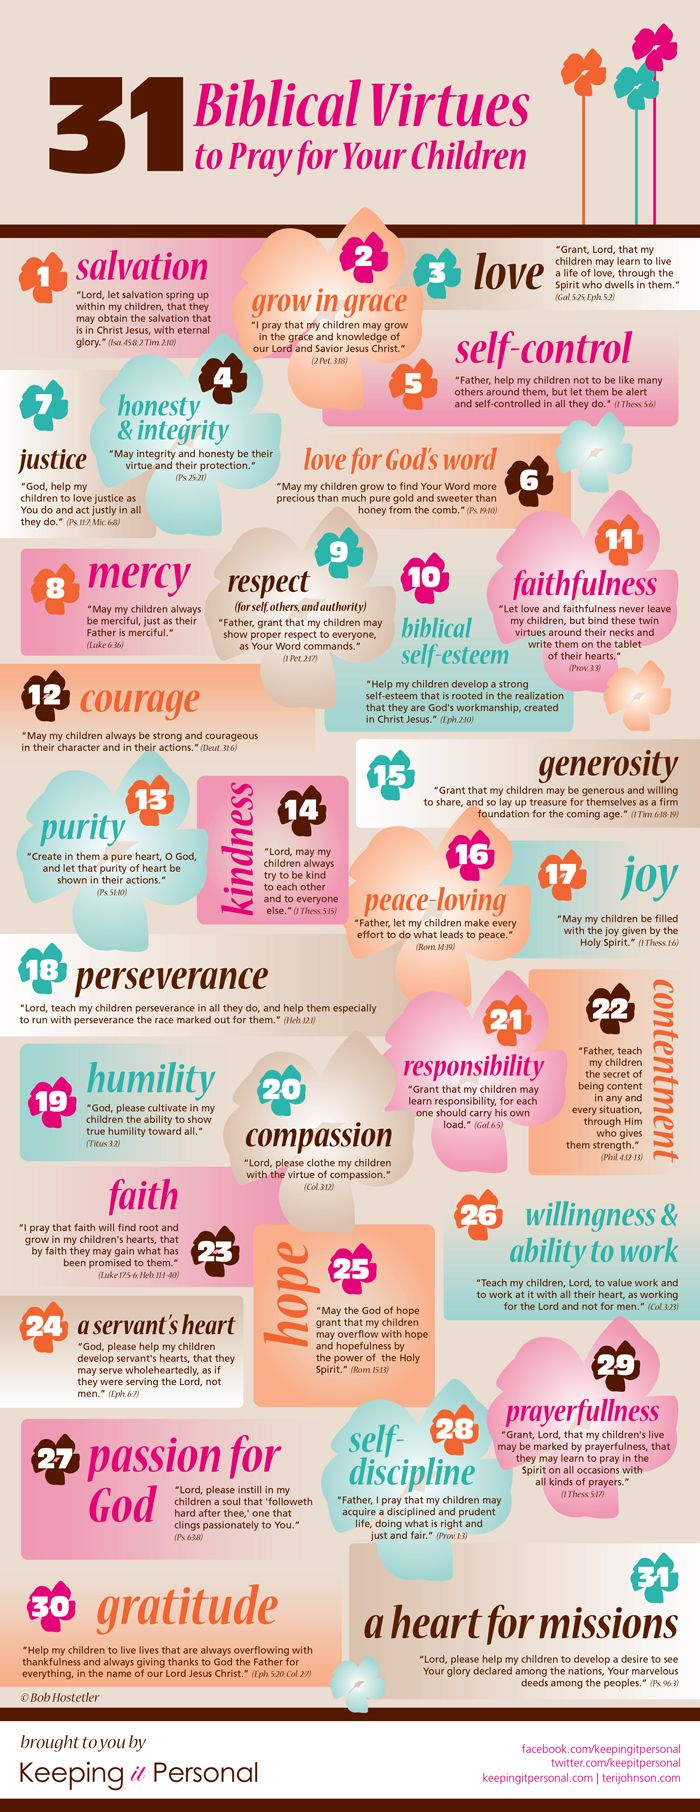 I printed this for my prayer journal, the new (for the parents) bulletin board that I am getting together for my children's church. I also printed copies to give to each of our children's church families. The blogger also will be writing about each virtue, so I want to go back and read what she has to say.